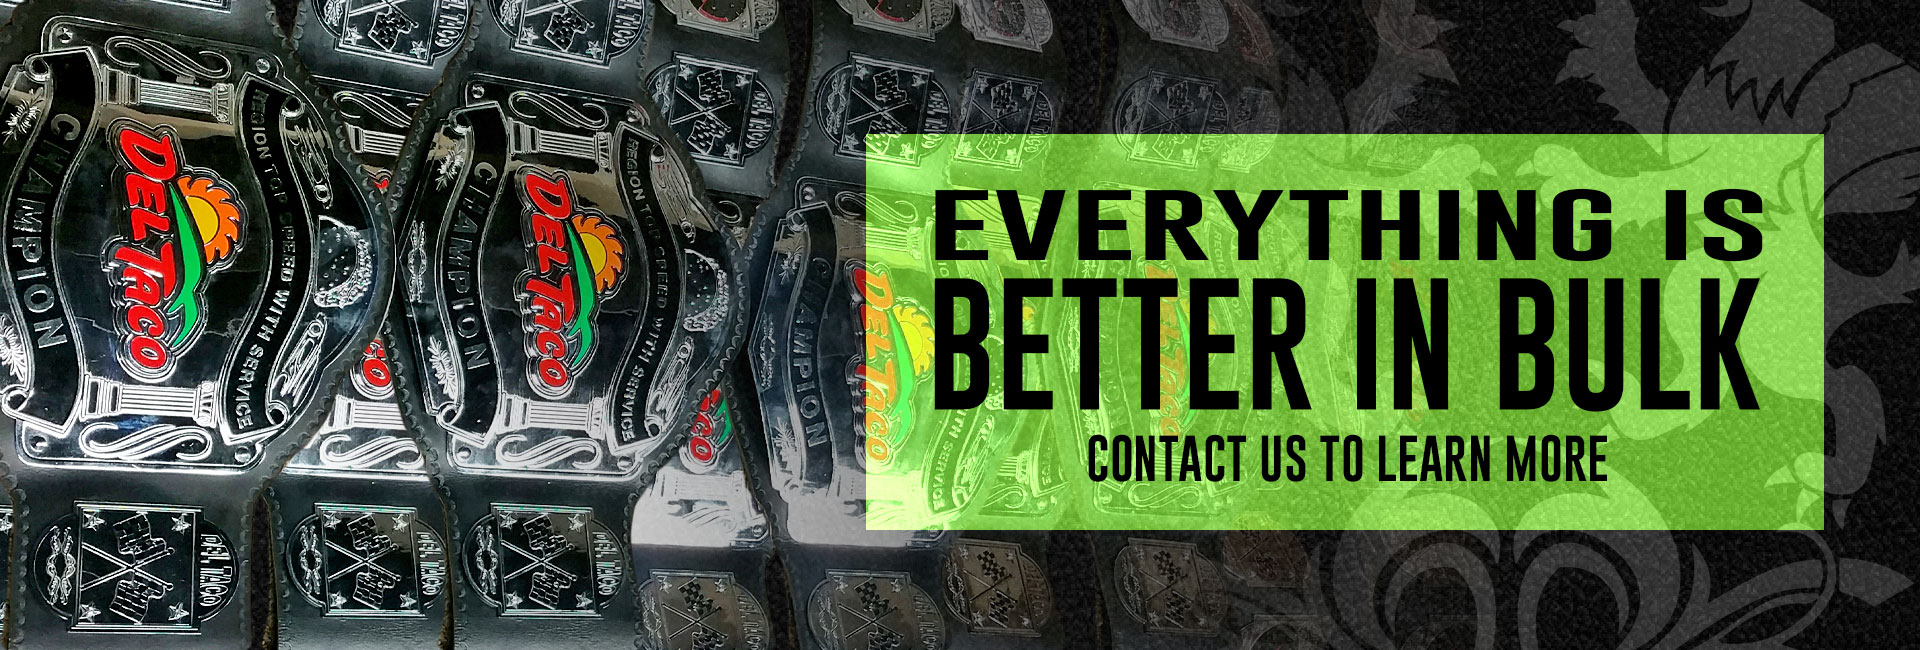 Everything is better in bulk! ProAmBelts offers bulk / wholesale custom championship belts. Contact us today to learn more!